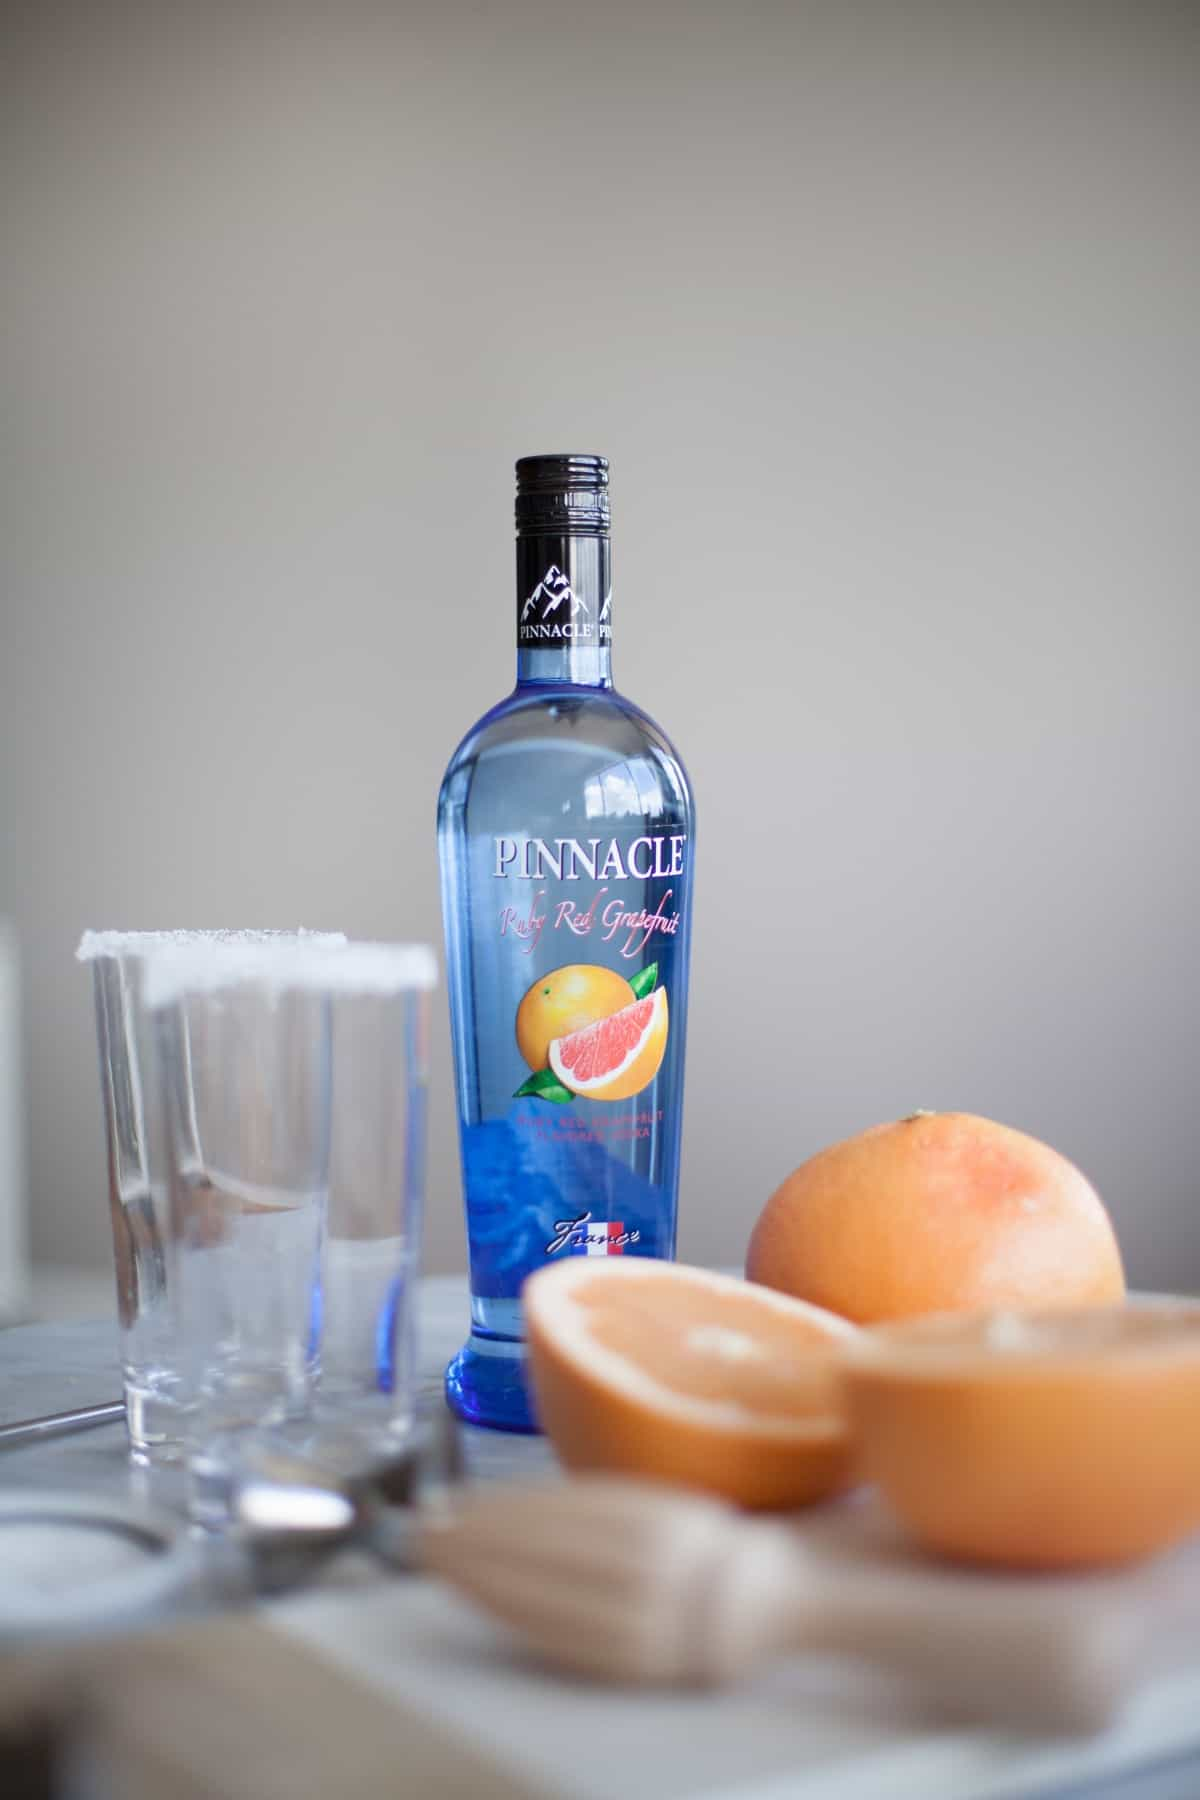 salty dog cocktail recipe pinnacle vodka via @mystylevita [My Style Vita] How to make a salty dog